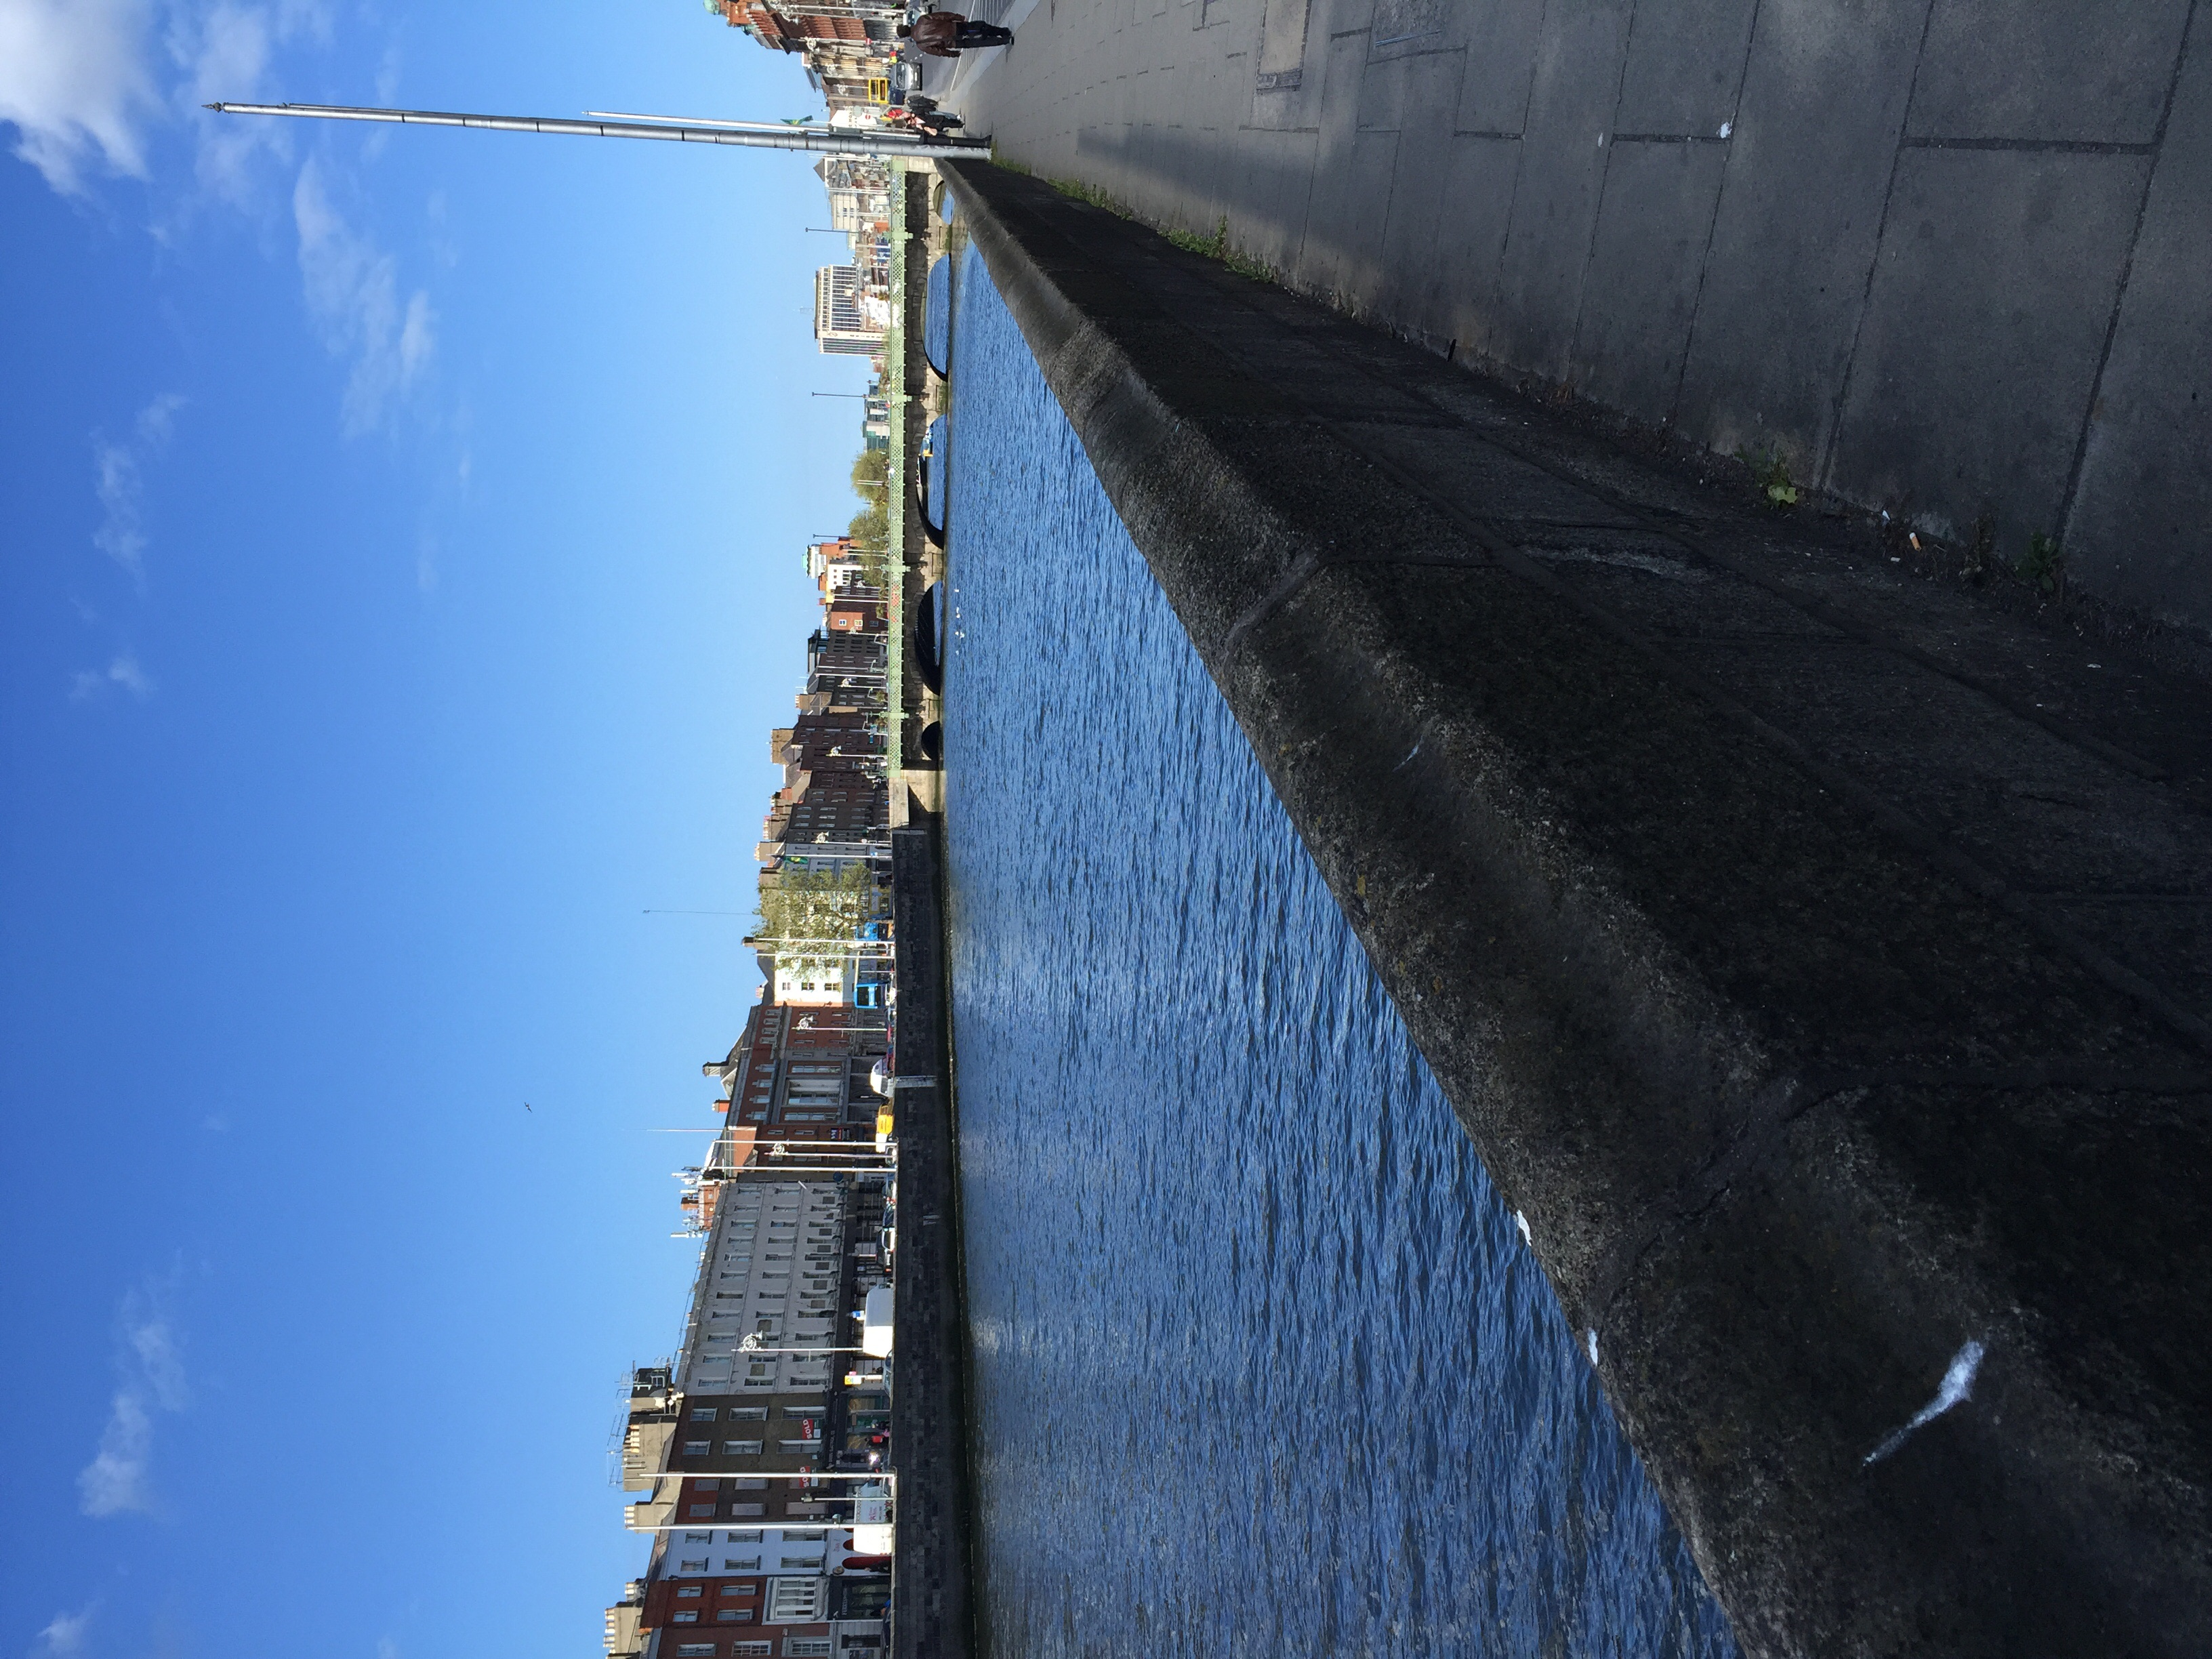 Walking along the River Liffey to Temple Bar area. Dublin has been very easy to get around in so far!